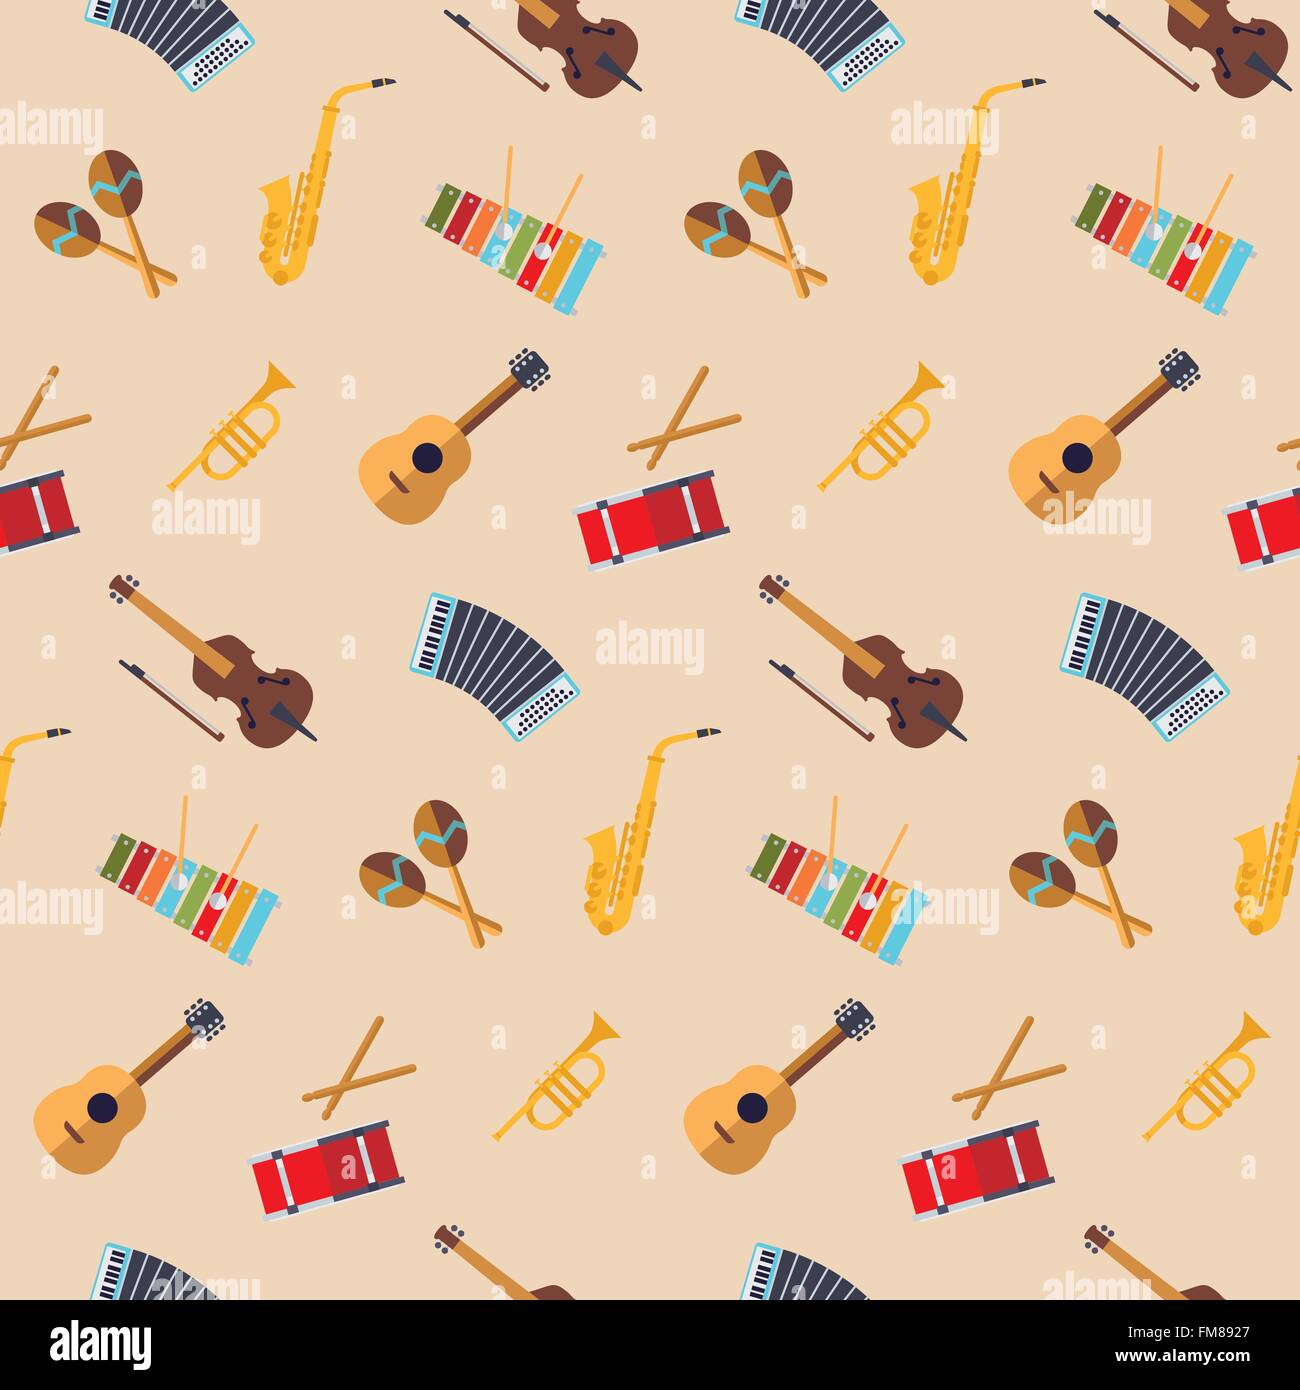 Seamless background with flat design musical instruments - Stock Image